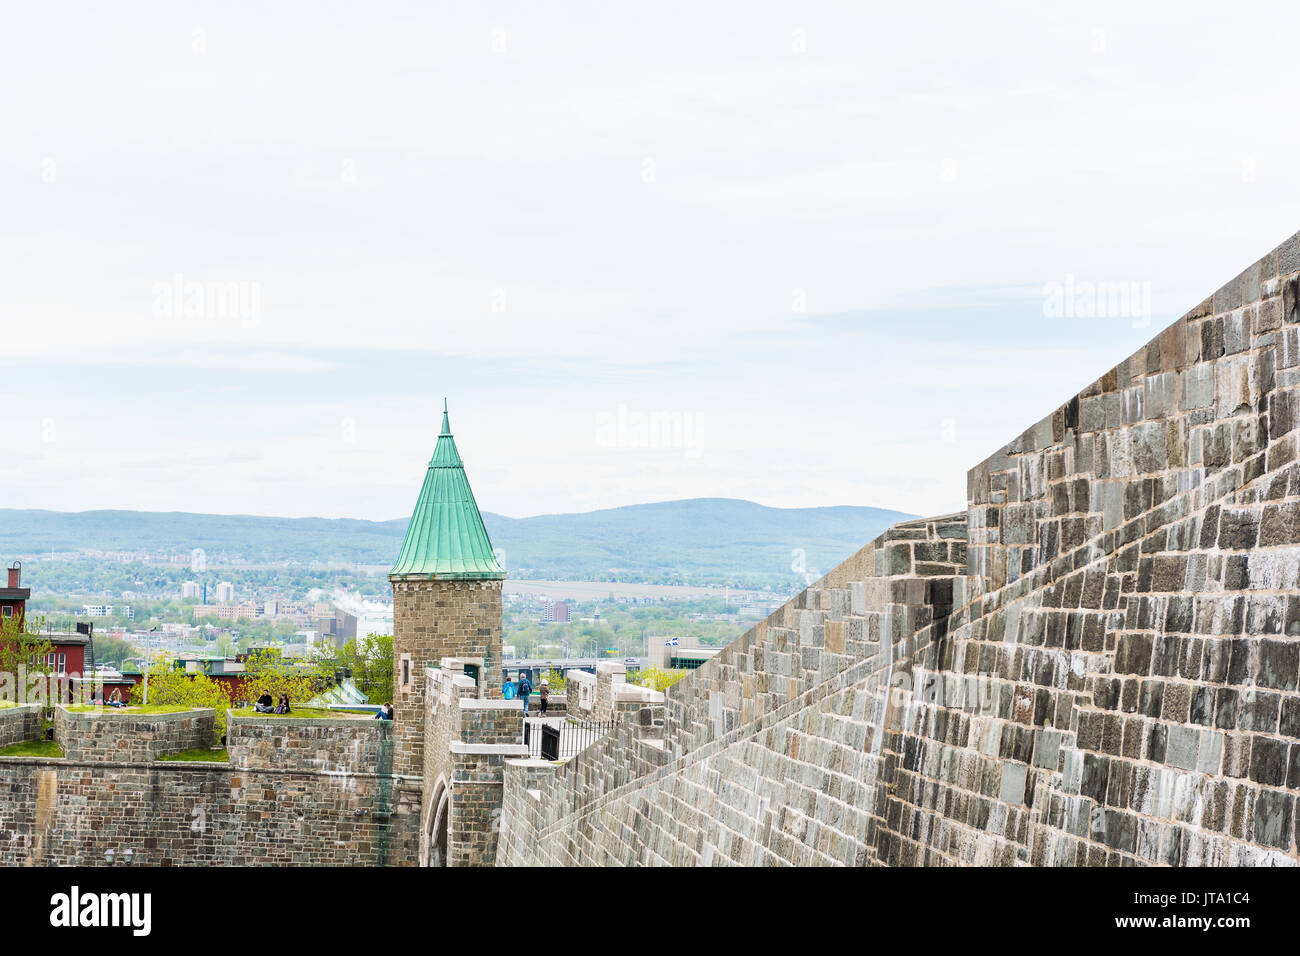 Quebec City, Canada - May 29, 2017: Fortifications stone wall and cityscape or skyline view - Stock Image